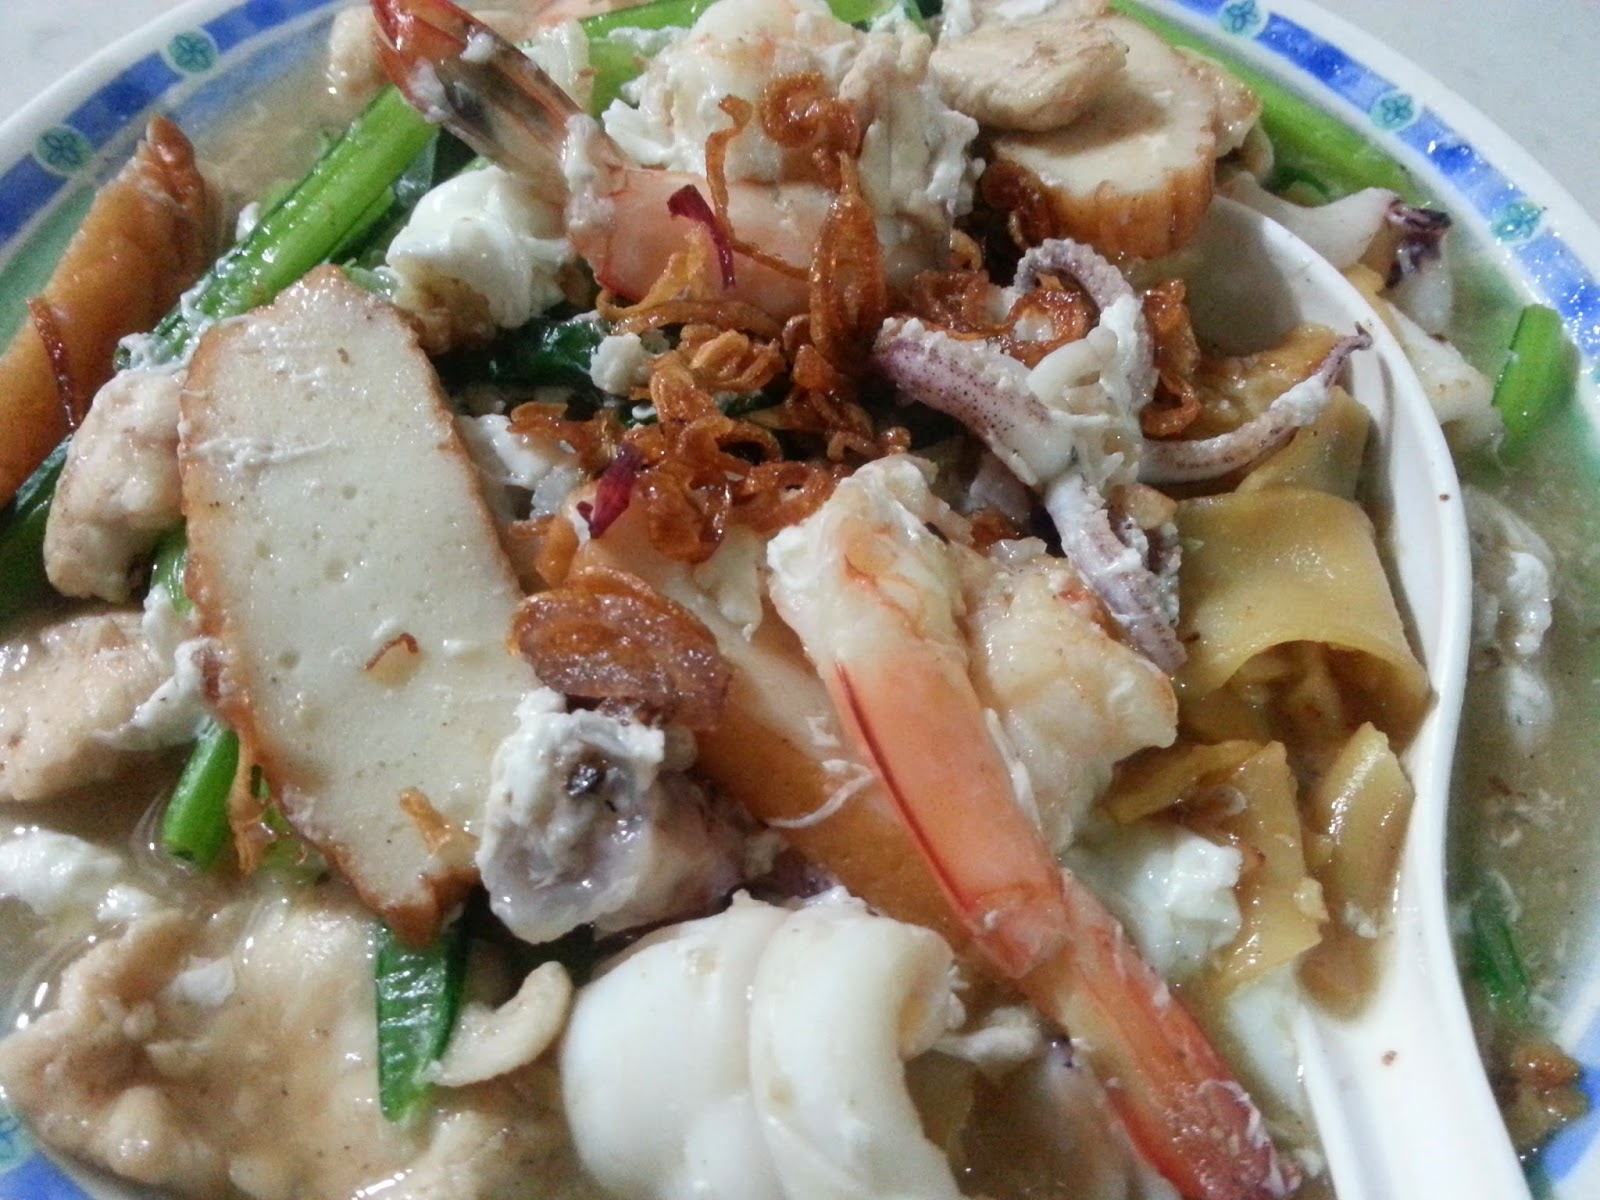 Flavour and savour the food lovers blog recipe wa tan hor recipe wa tan hor cantonese style fried kway teow rice noodles forumfinder Gallery